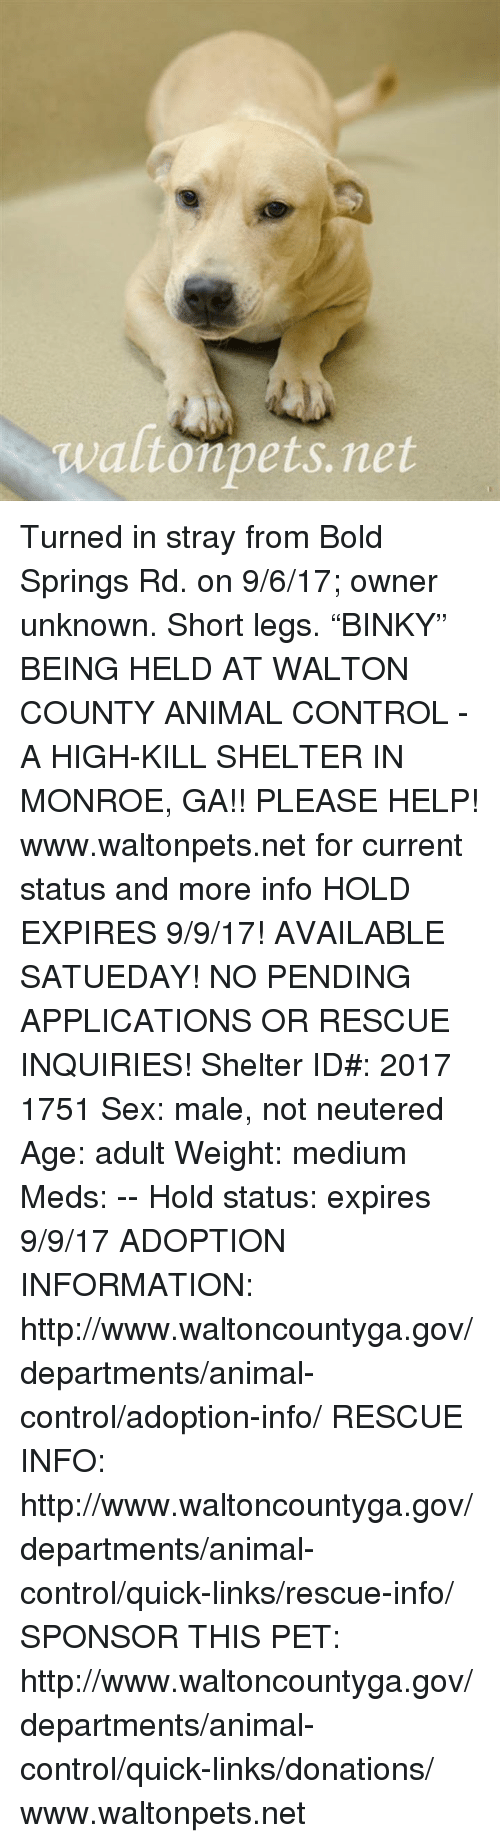 Waltonpetsnet Turned in Stray From Bold Springs Rd on 9617 Owner